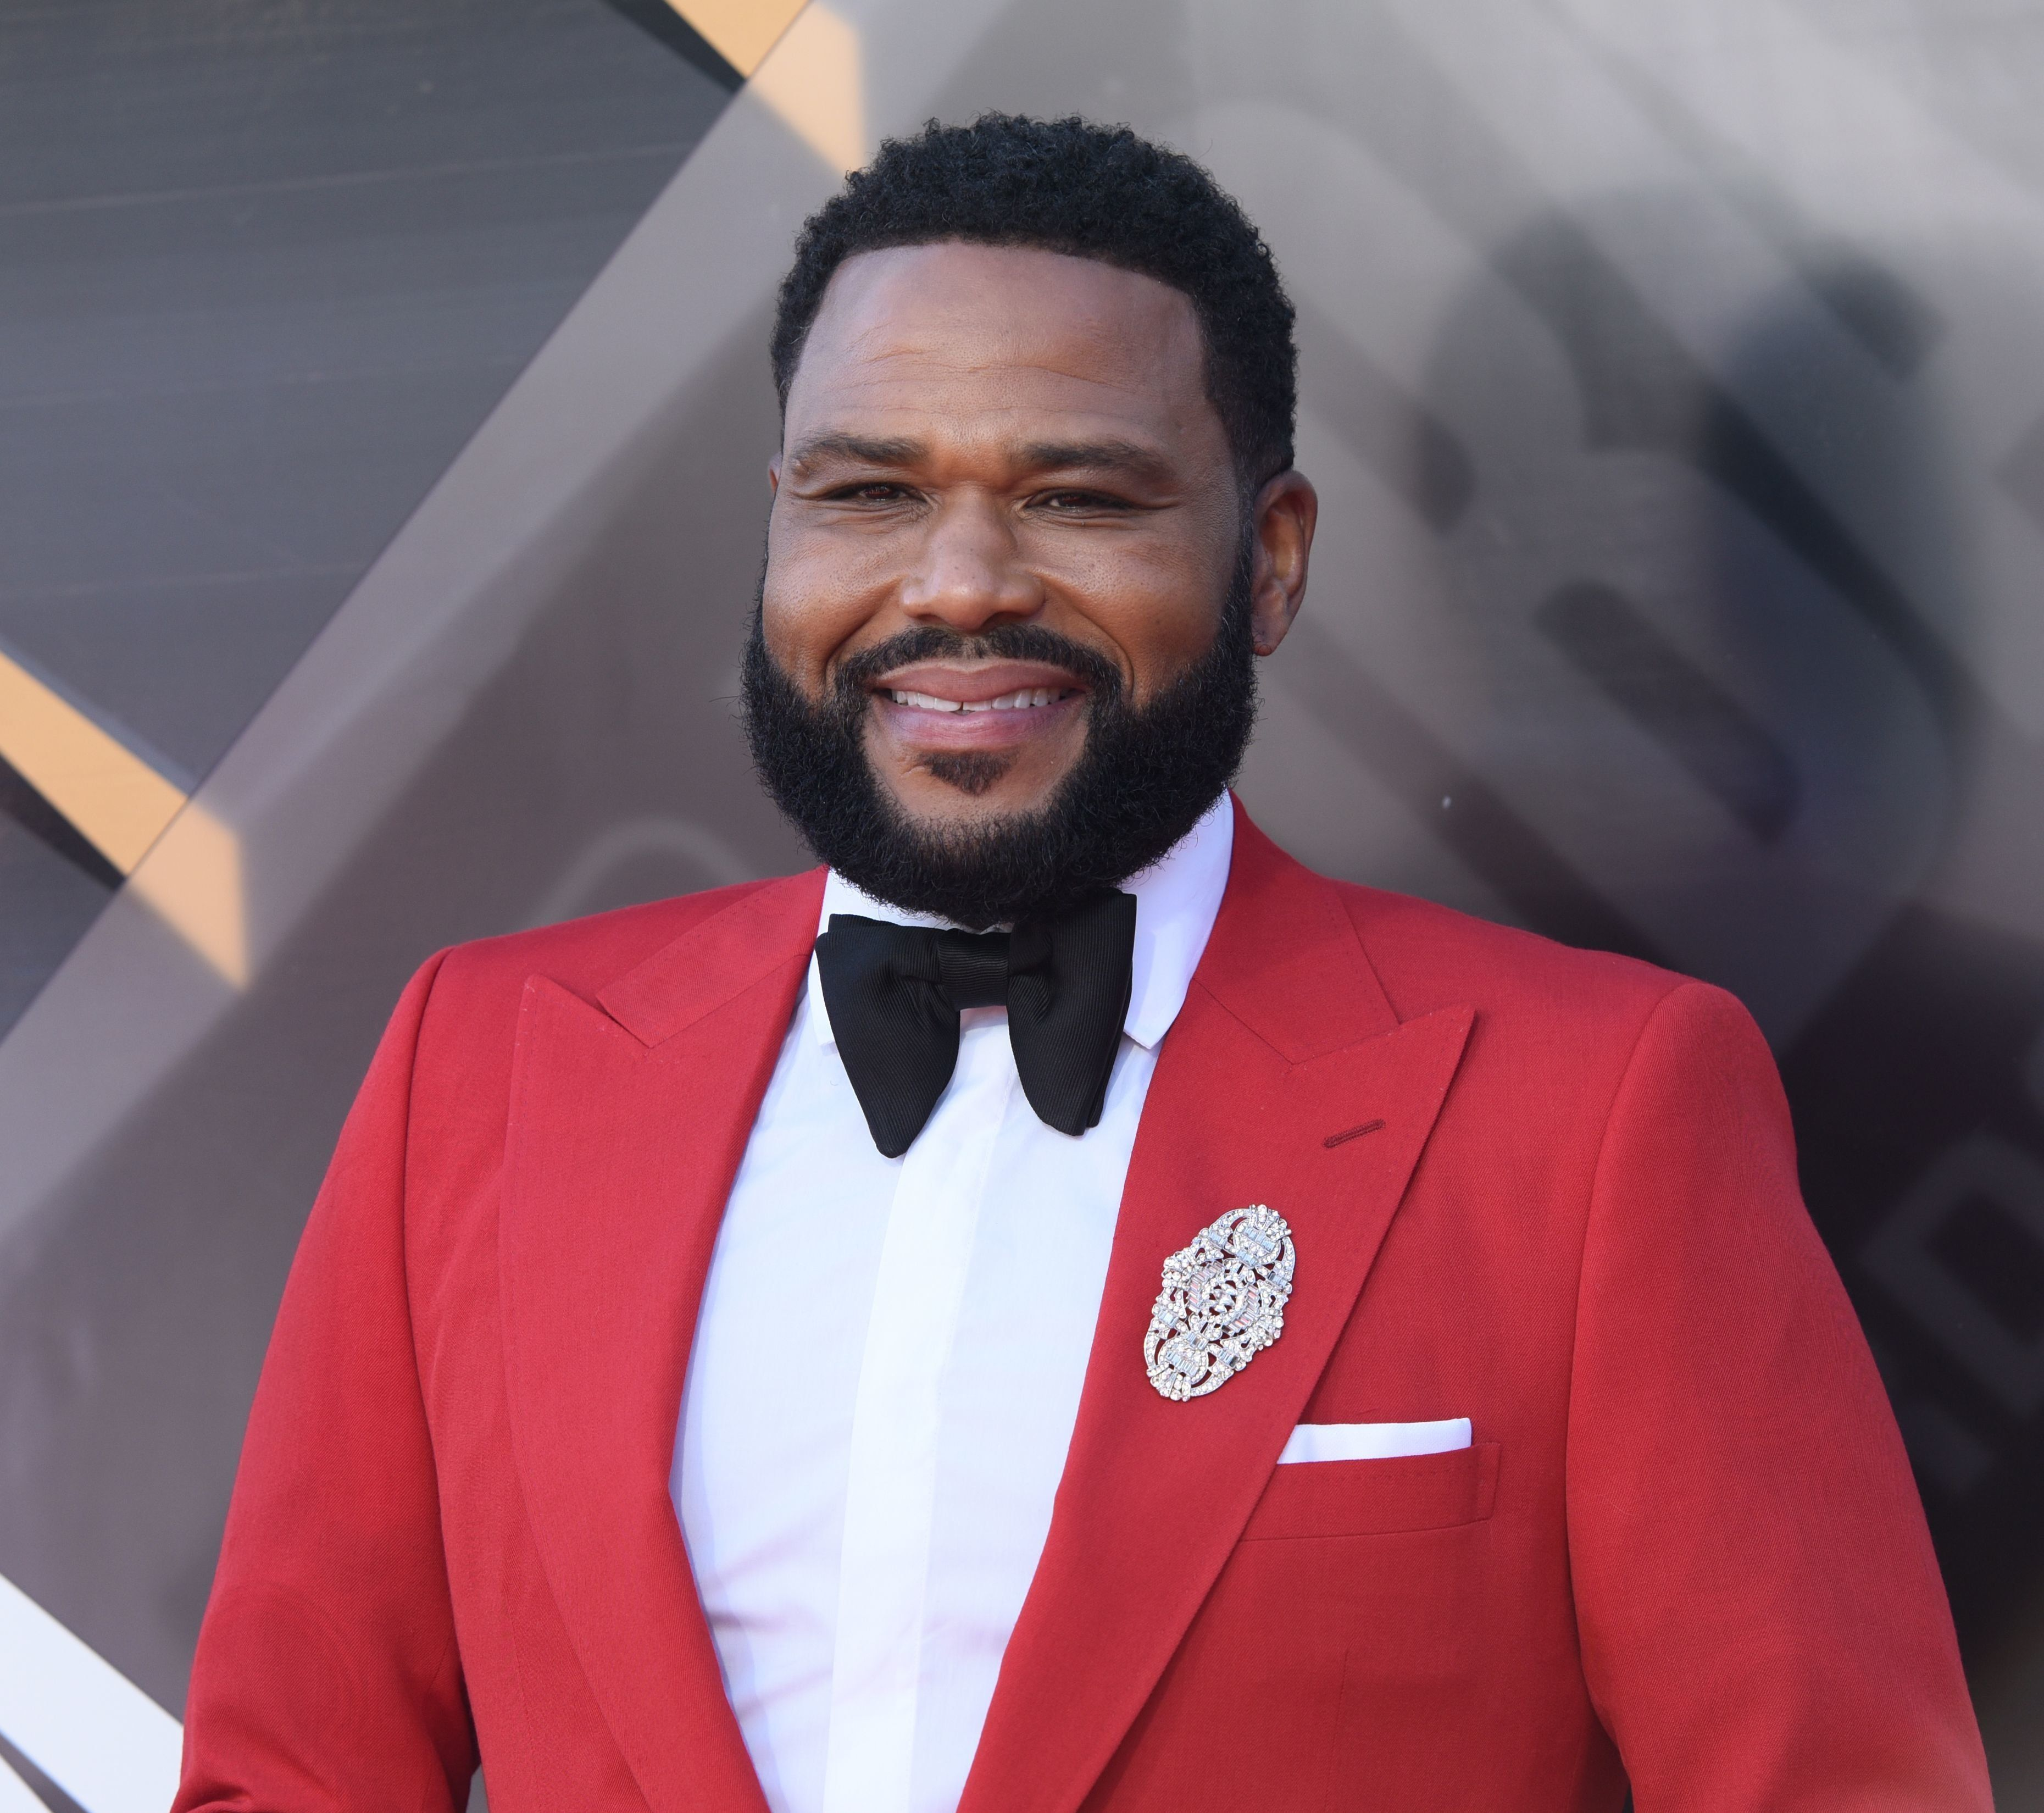 US actor and host of the awards show Anthony Anderson attends the 2018 NBA Awards at Barkar Hangar on June 25, 2018 in Santa Monica, California. (Photo by TARA ZIEMBA / AFP)        (Photo credit should read TARA ZIEMBA/AFP/Getty Images)